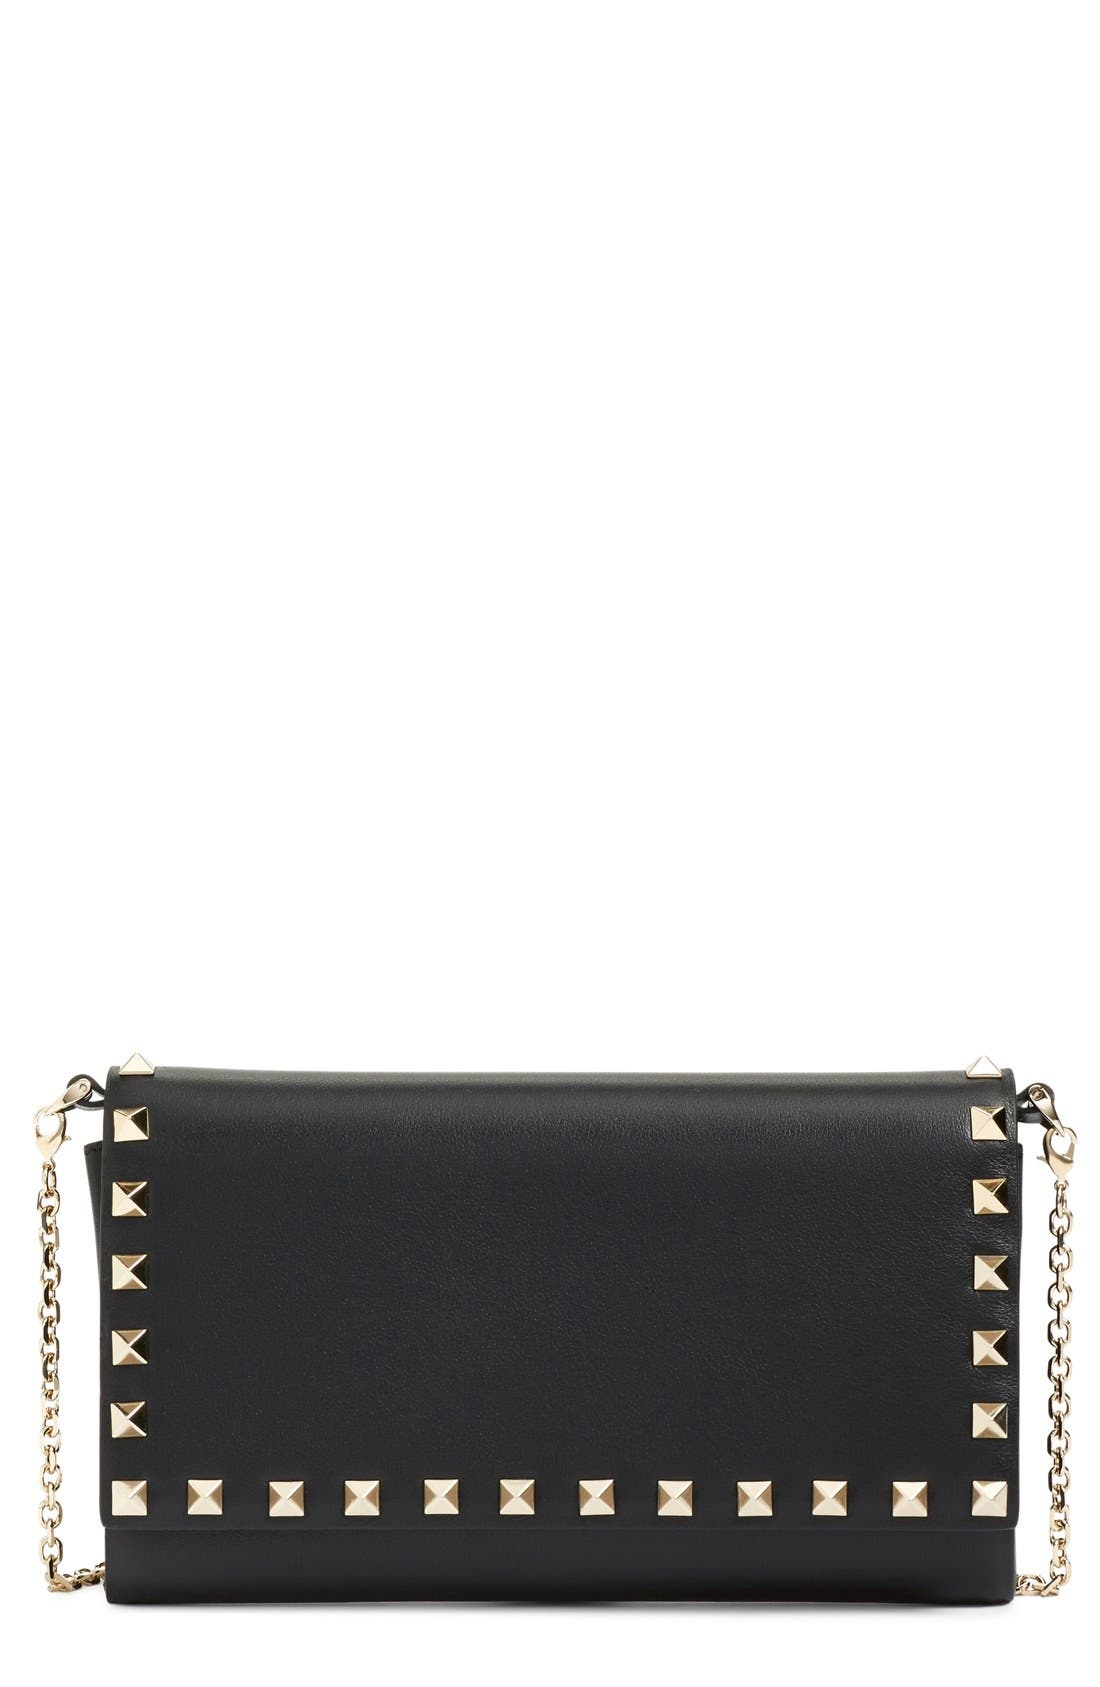 Main Image - Valentino 'Rockstud' Calfskin Leather Wallet on a Chain